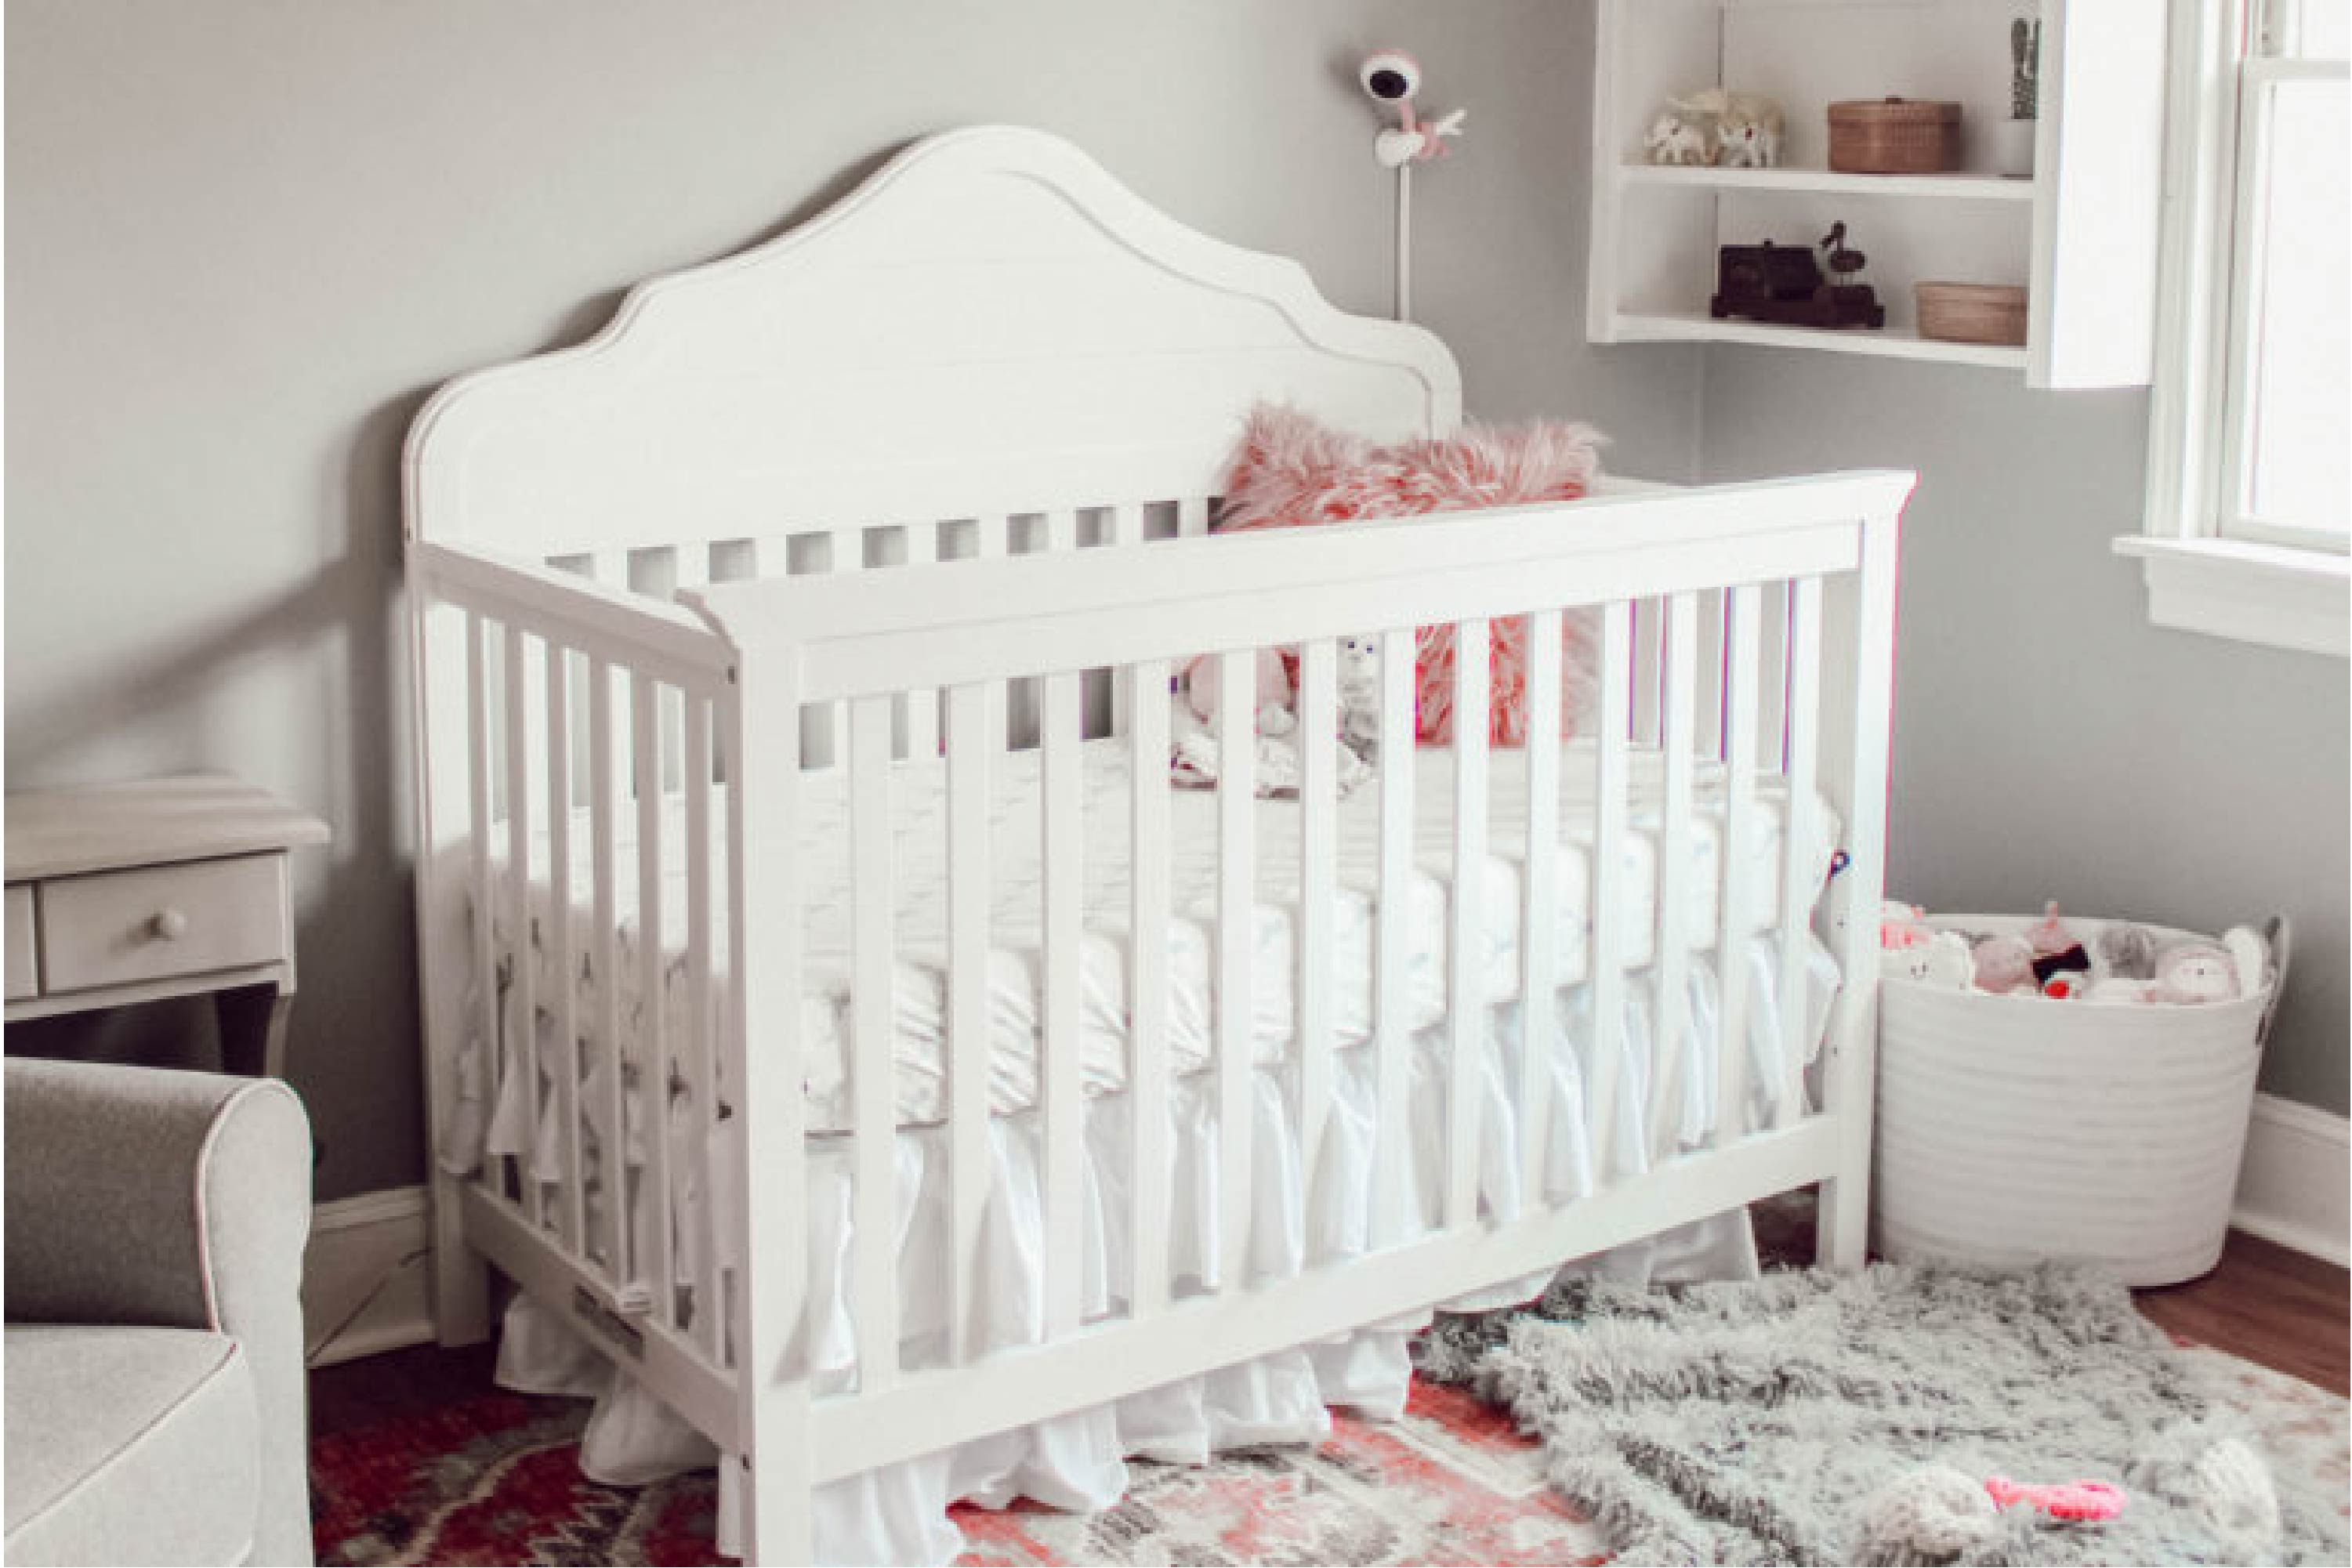 DaVincni Baby FLora 4-in-1 Convertible Crib in White